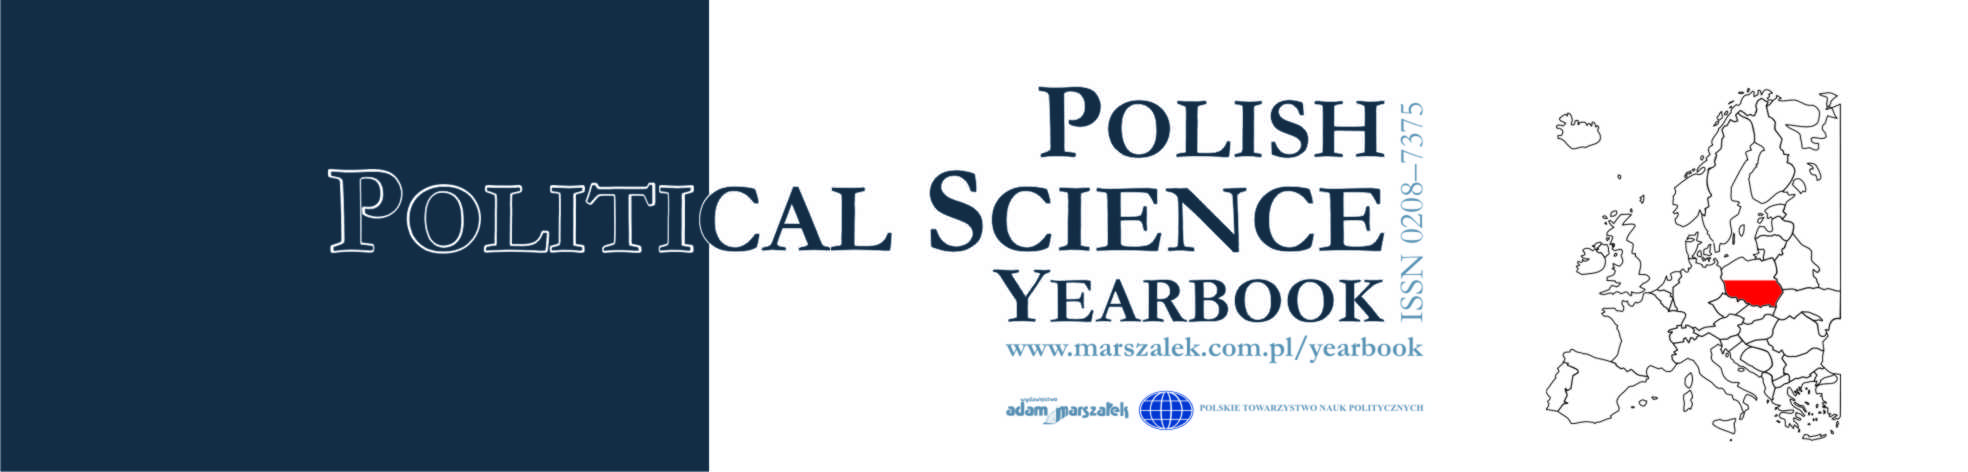 Polish Political Science Yearbook